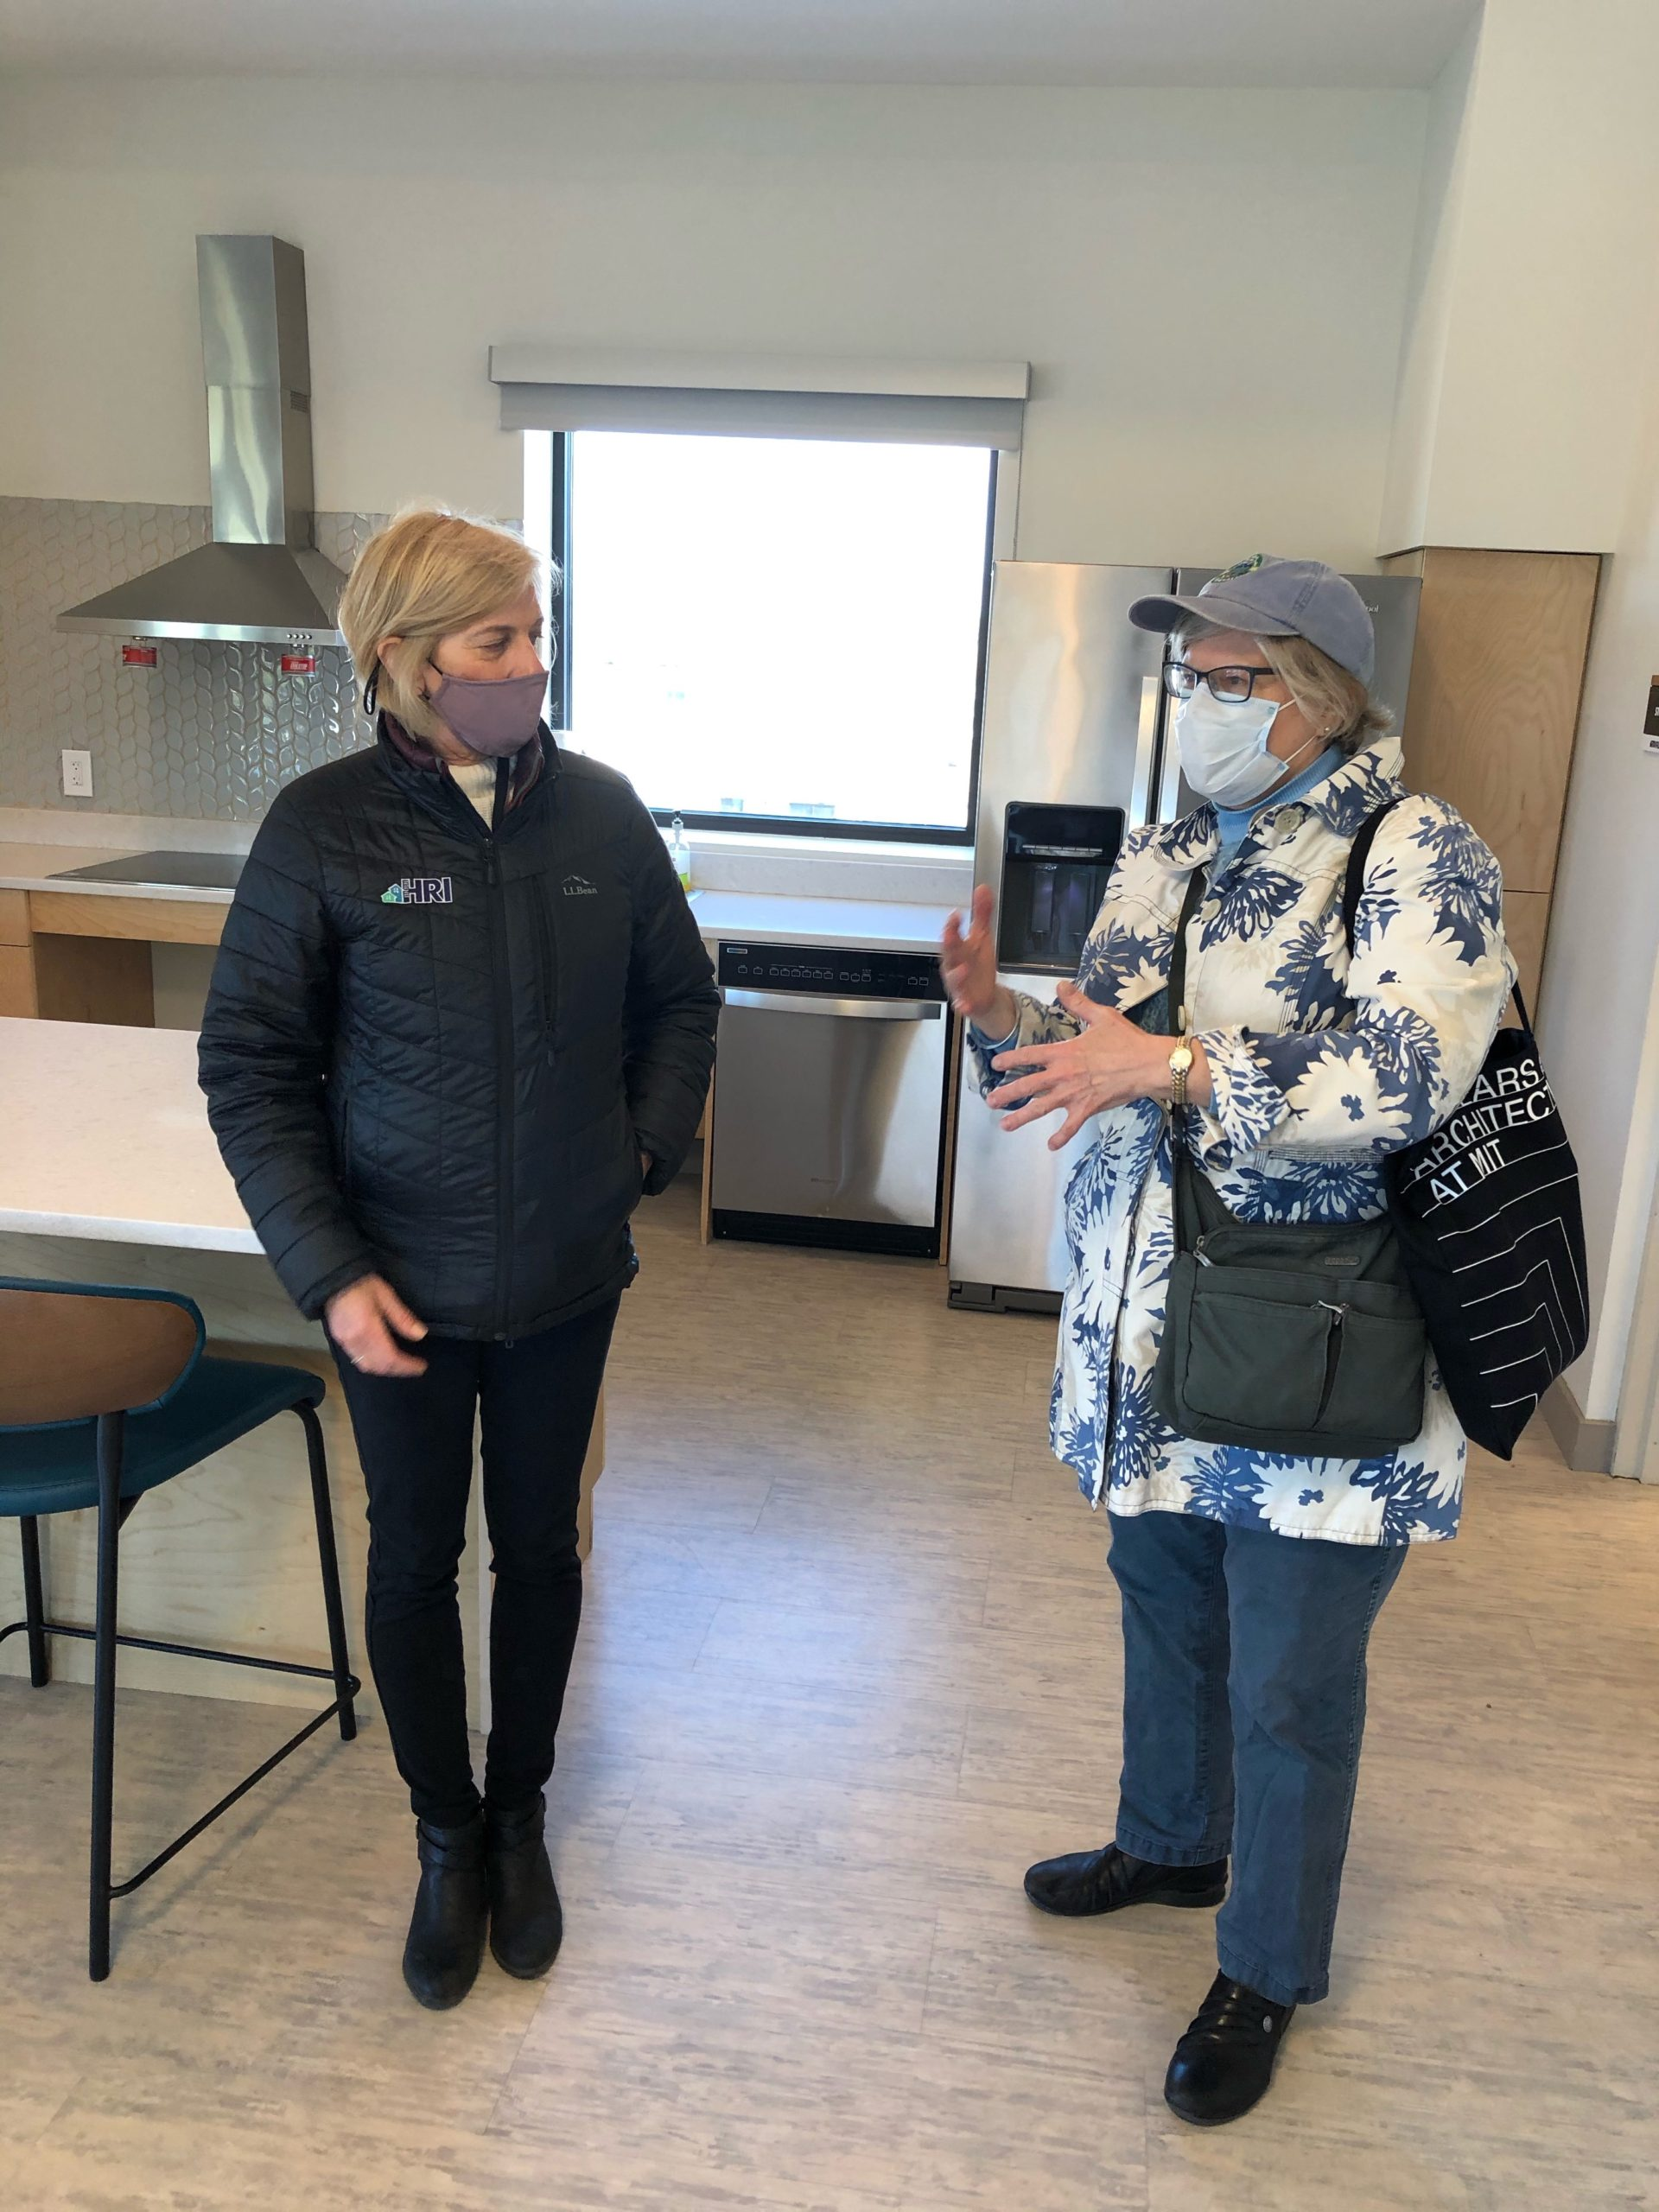 Jane and Kim chat in the community room